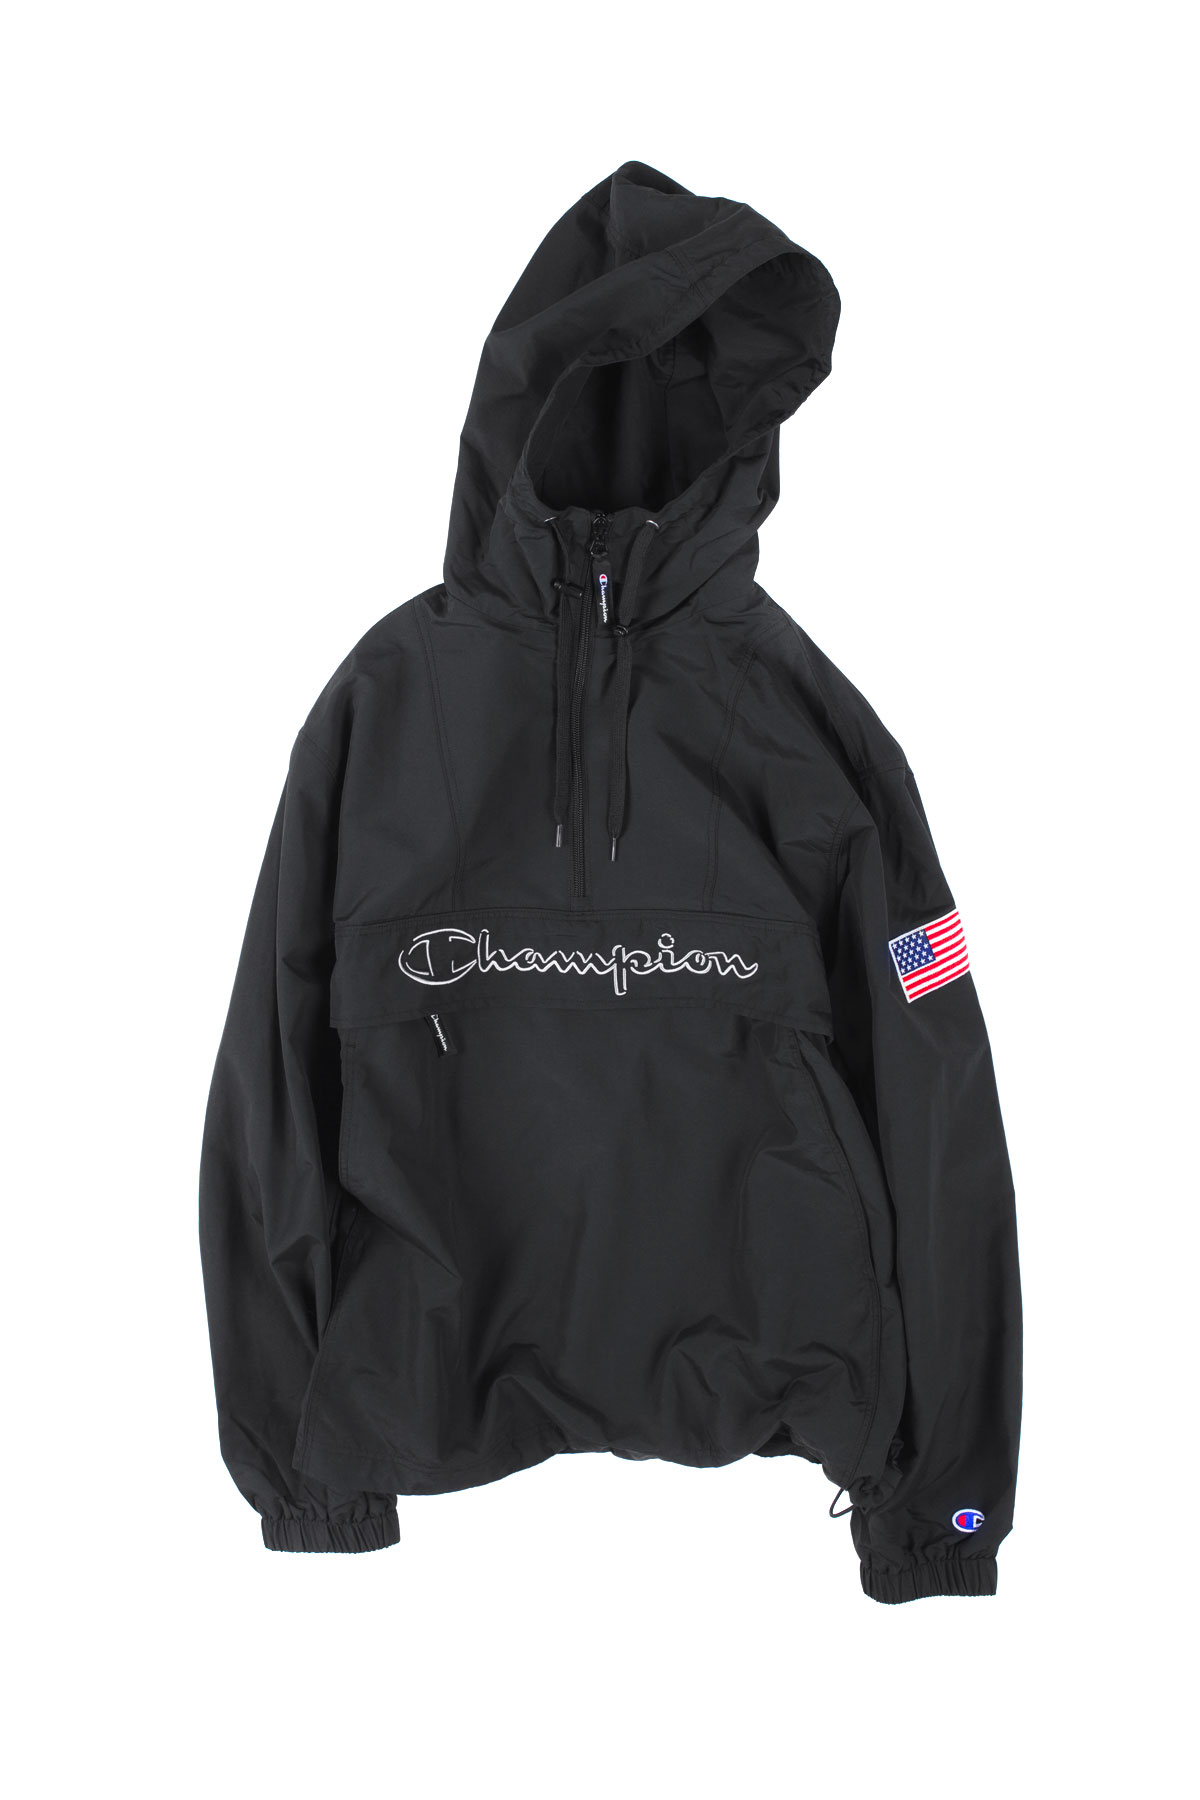 Champion : Anorak (Black)